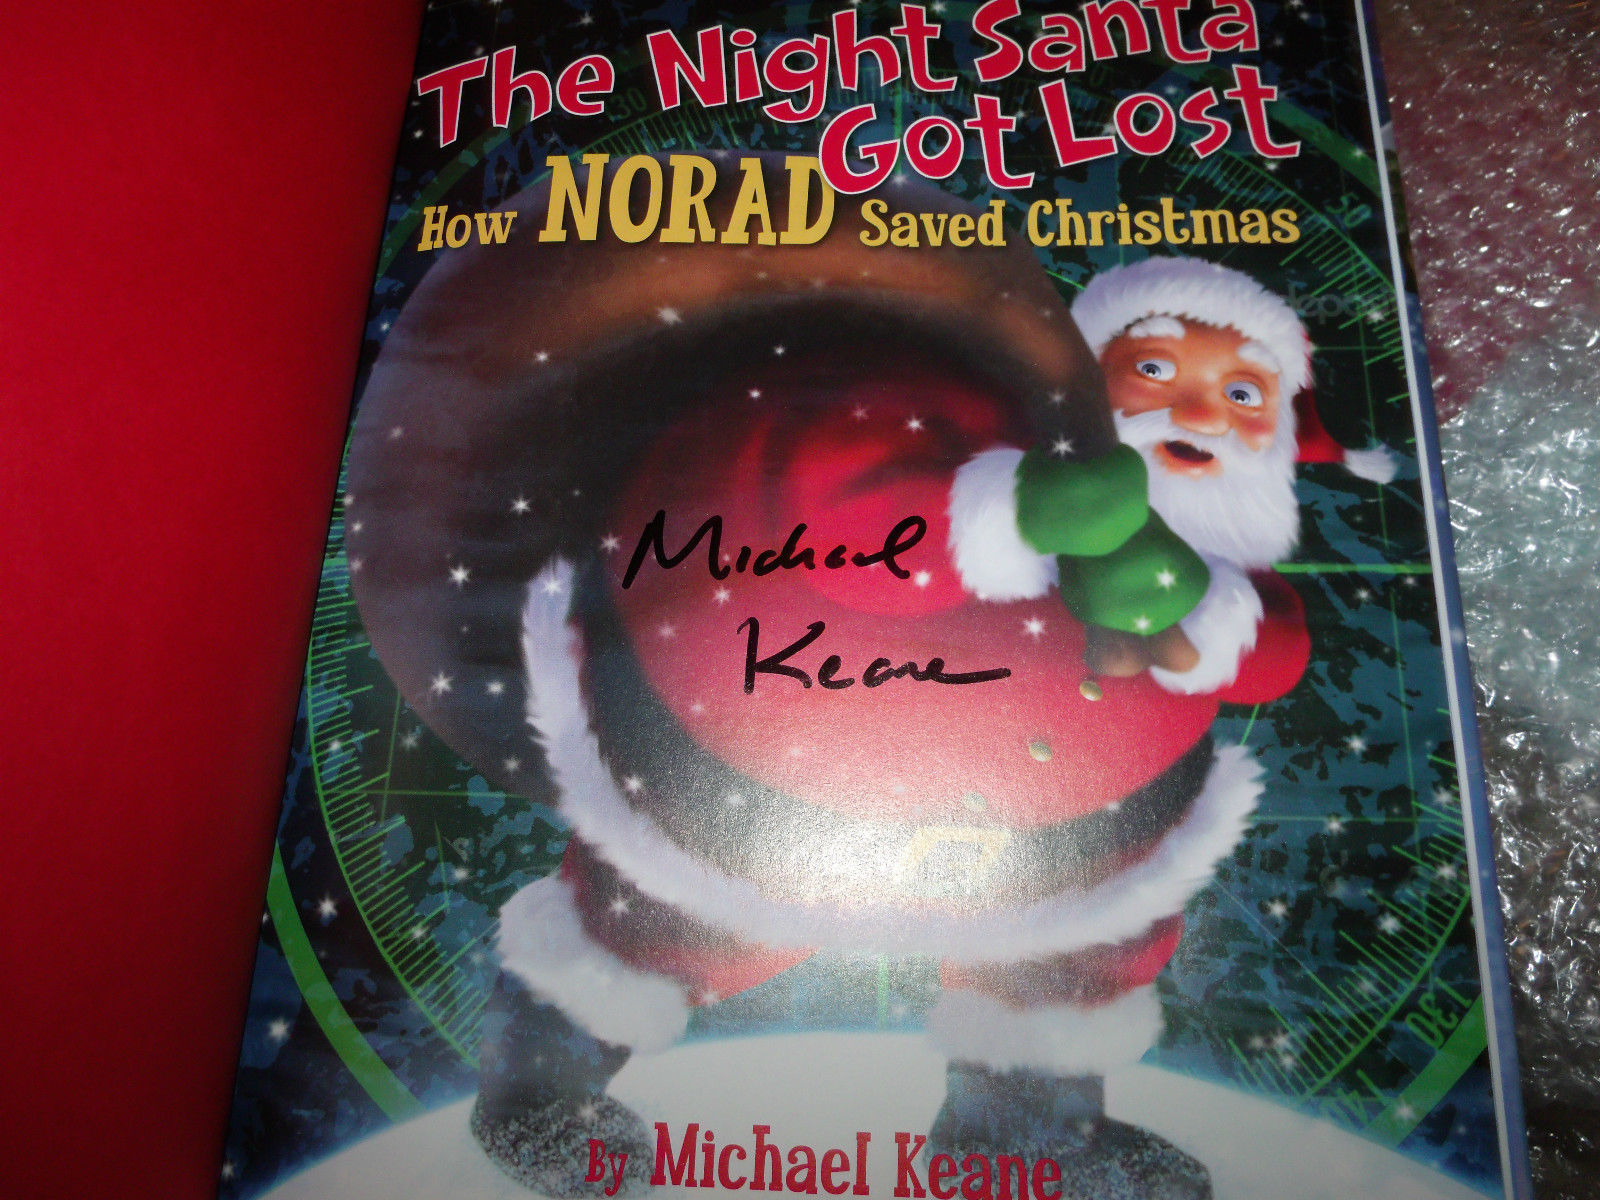 The Night Santa Got Lost : How NORAD Saved Christmas SIGNED by Michael Keane